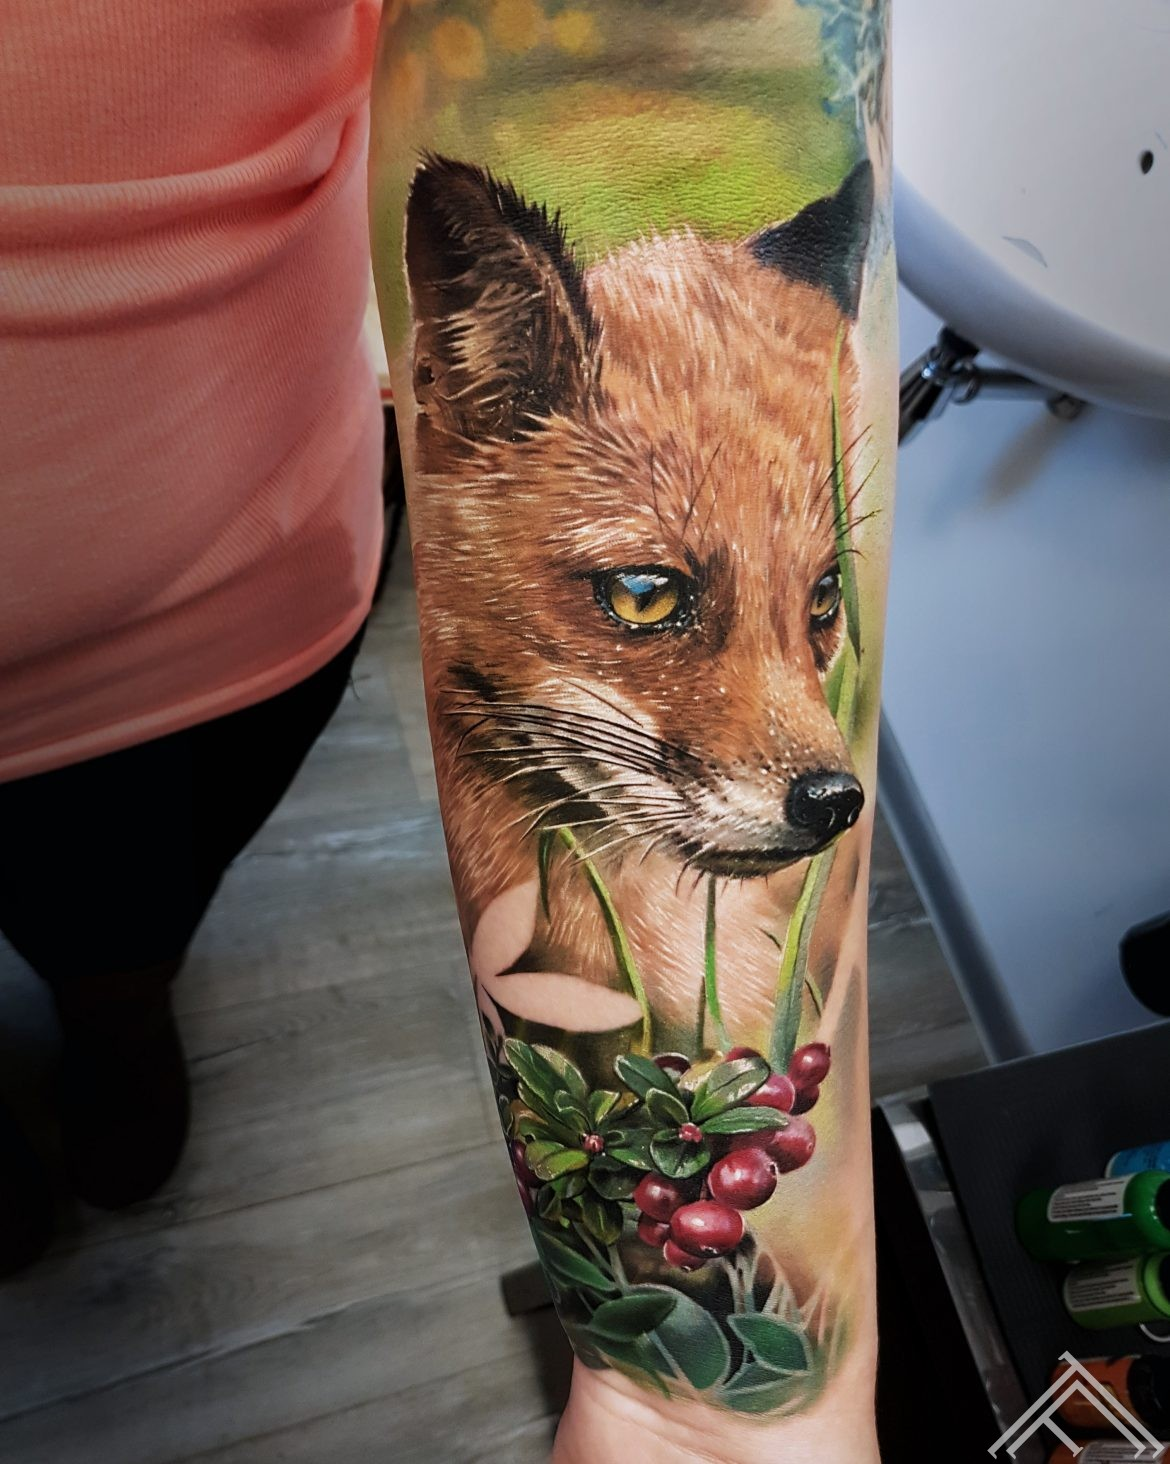 fox-cranberries-tattoo-tattoofrequency-riga-marispavlo-sporta2-art-tetovejums-lapsa-dzervenes